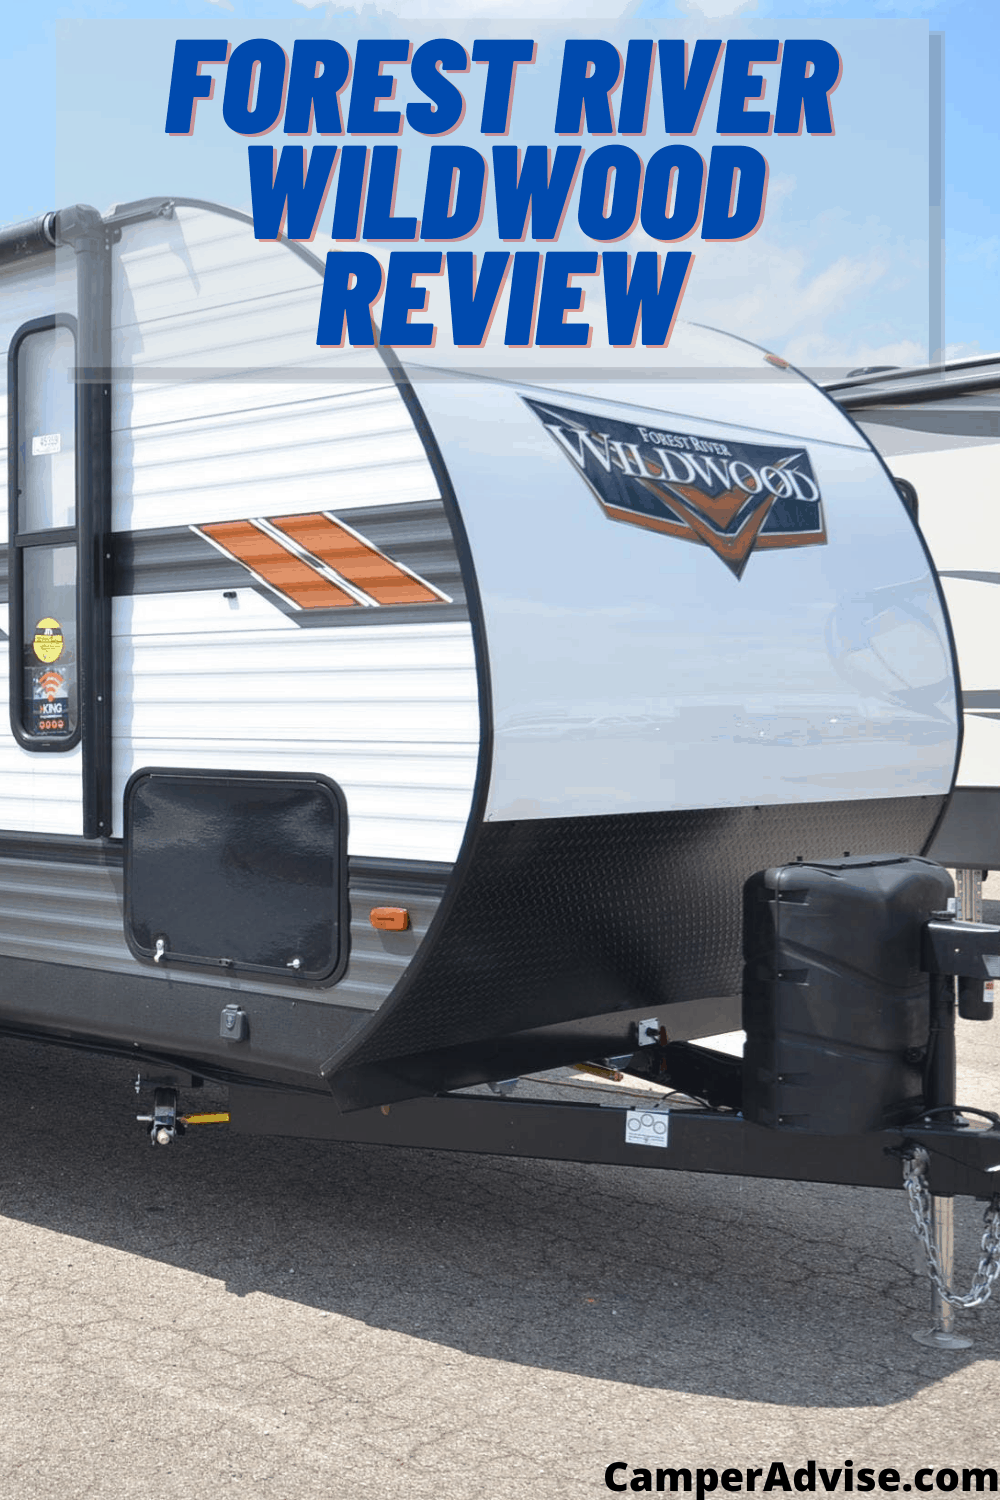 Forest River Wildwood Review